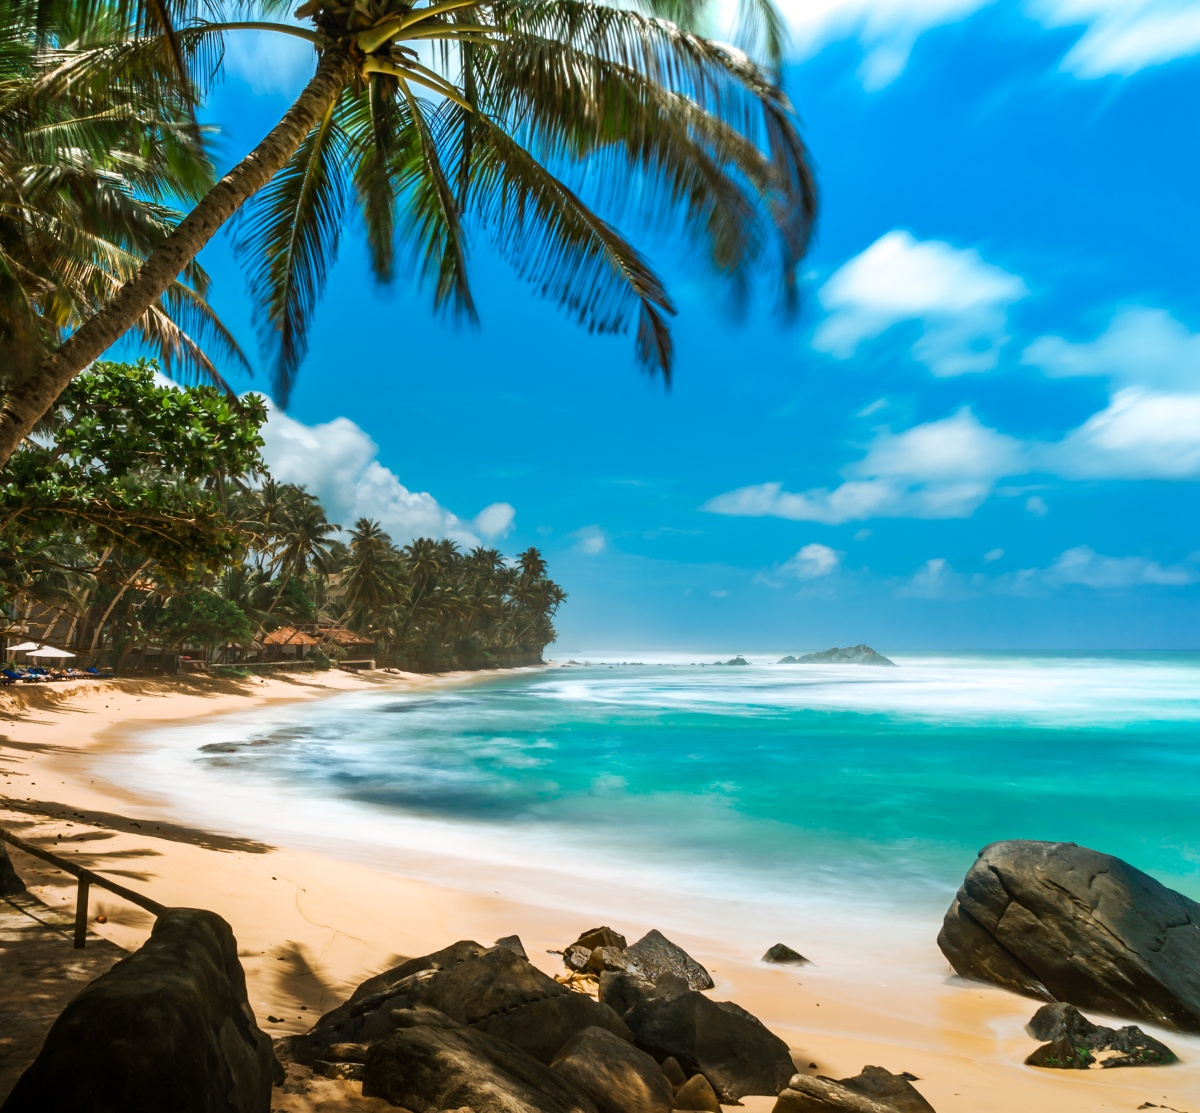 Photo of pictorisque tropical beach paradise